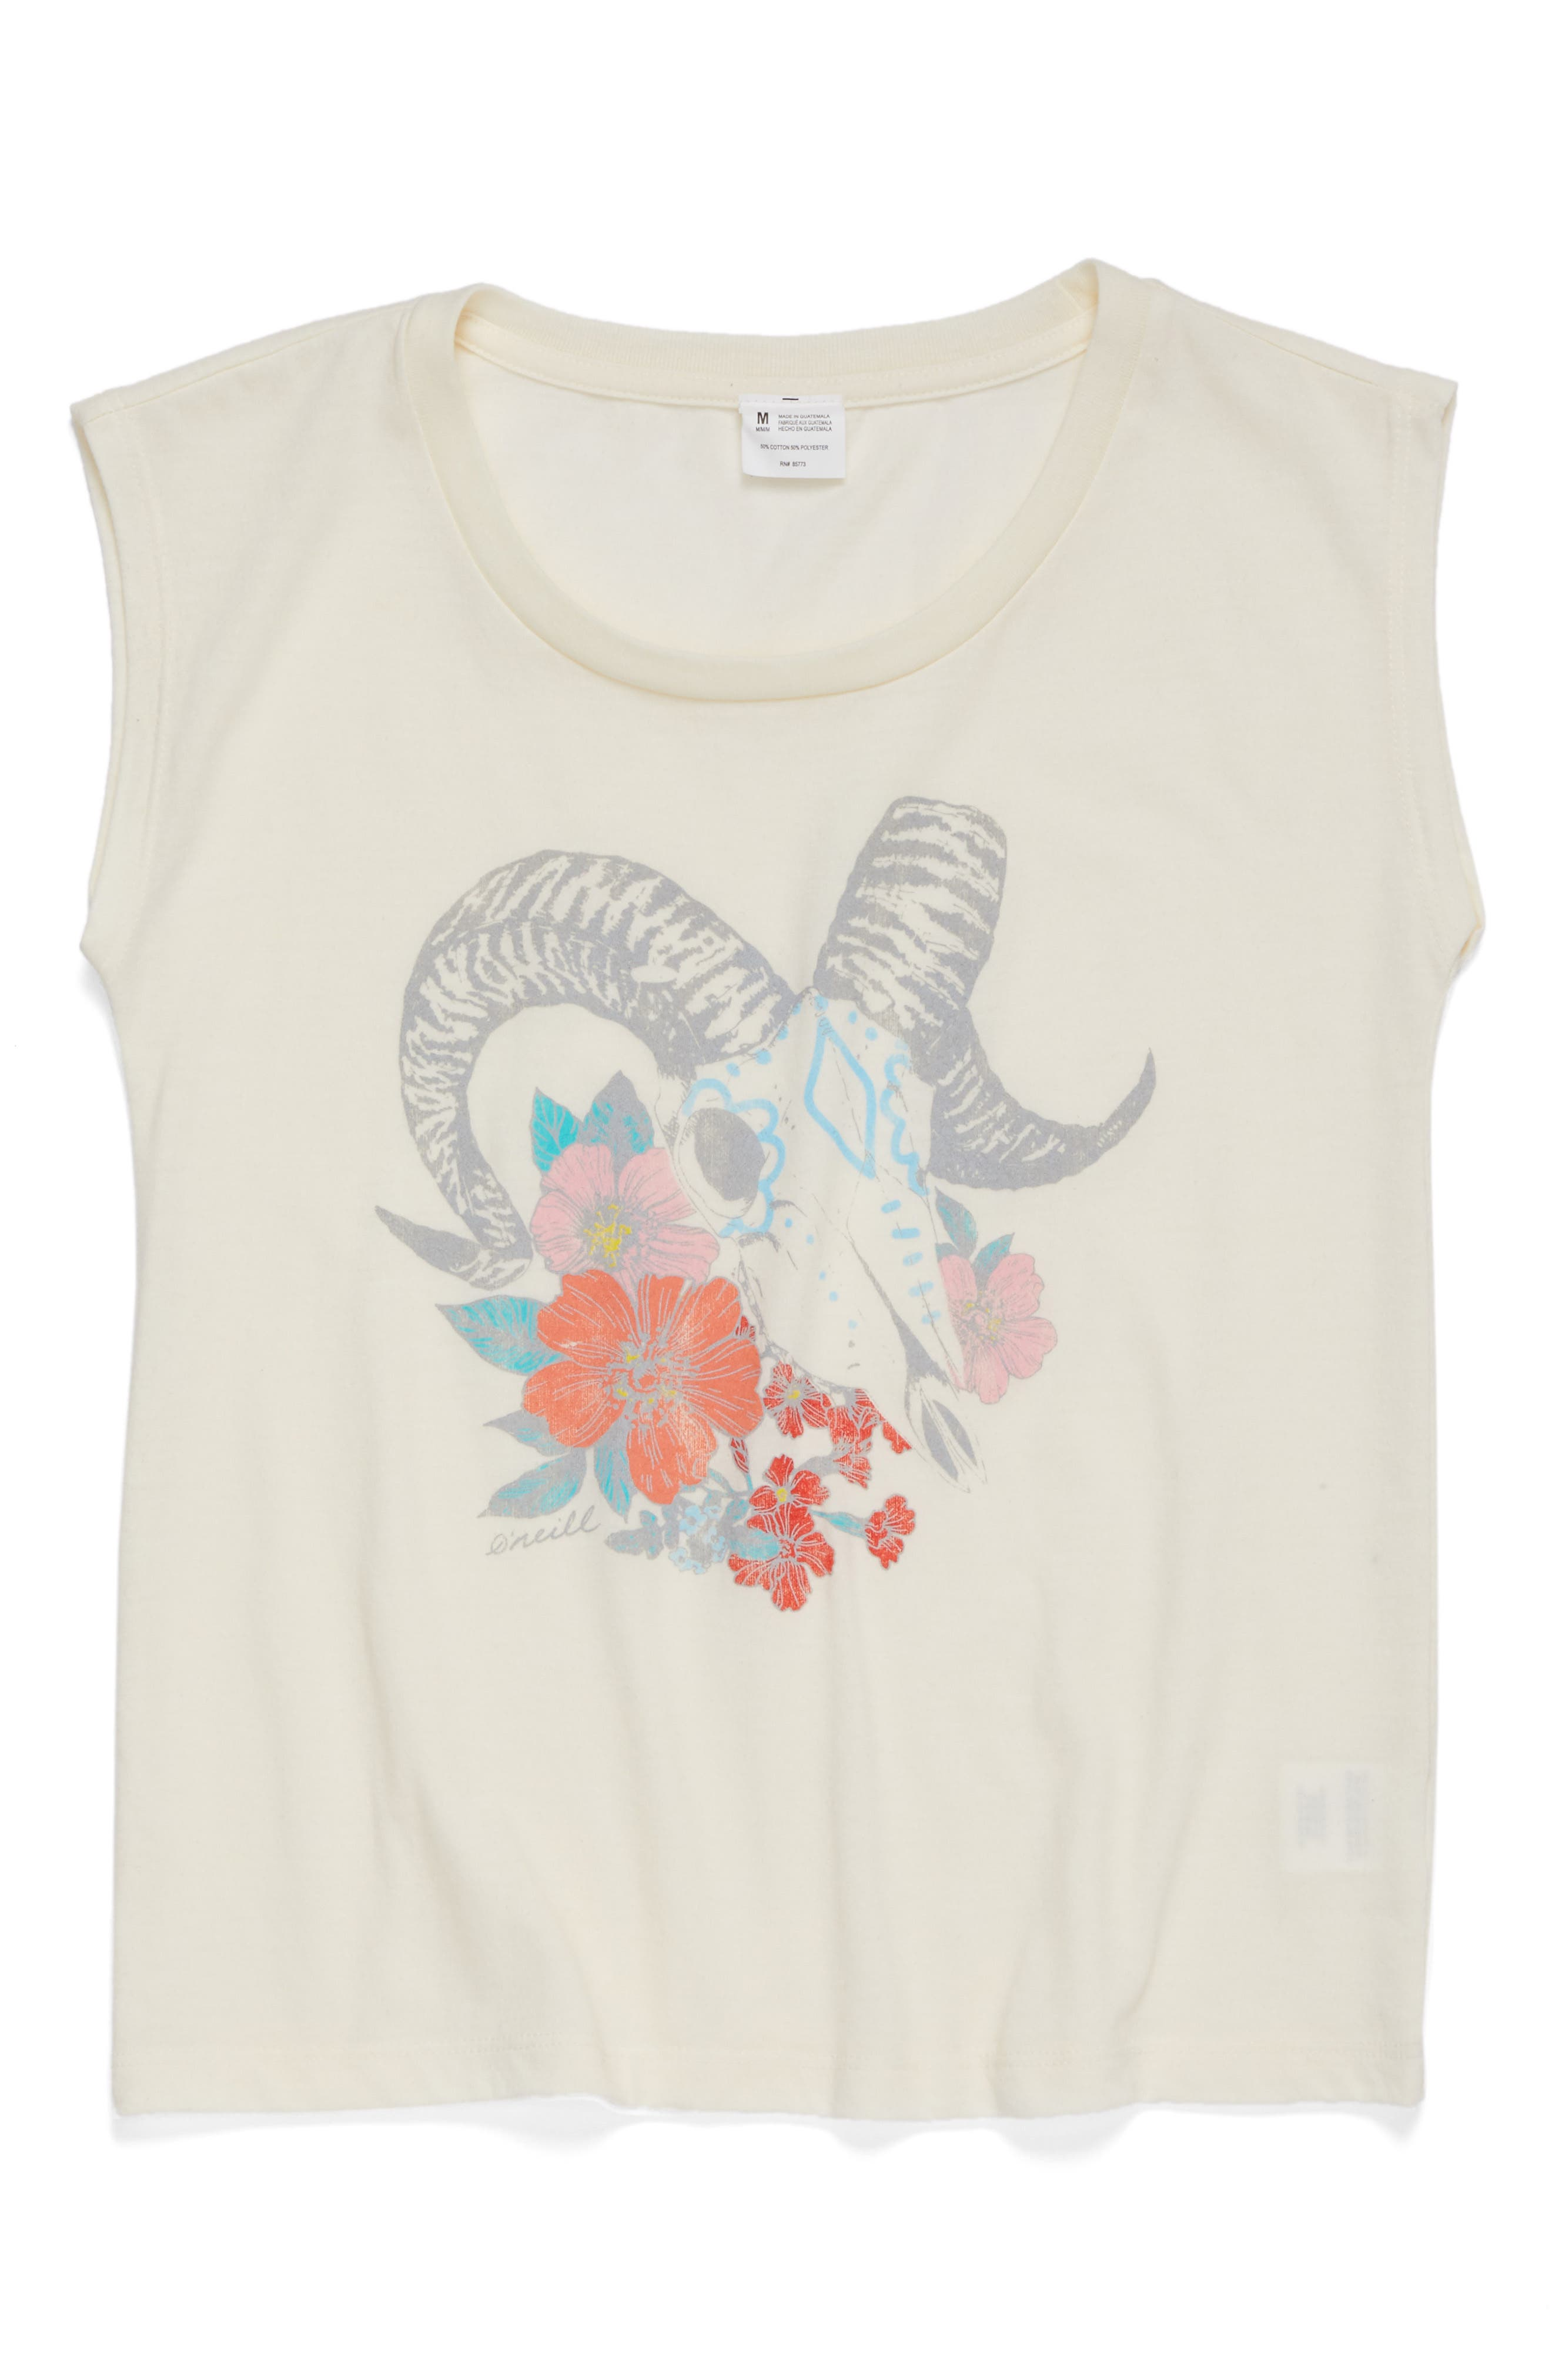 O'Neill Aries Sky Graphic Muscle Tee (Big Girls)